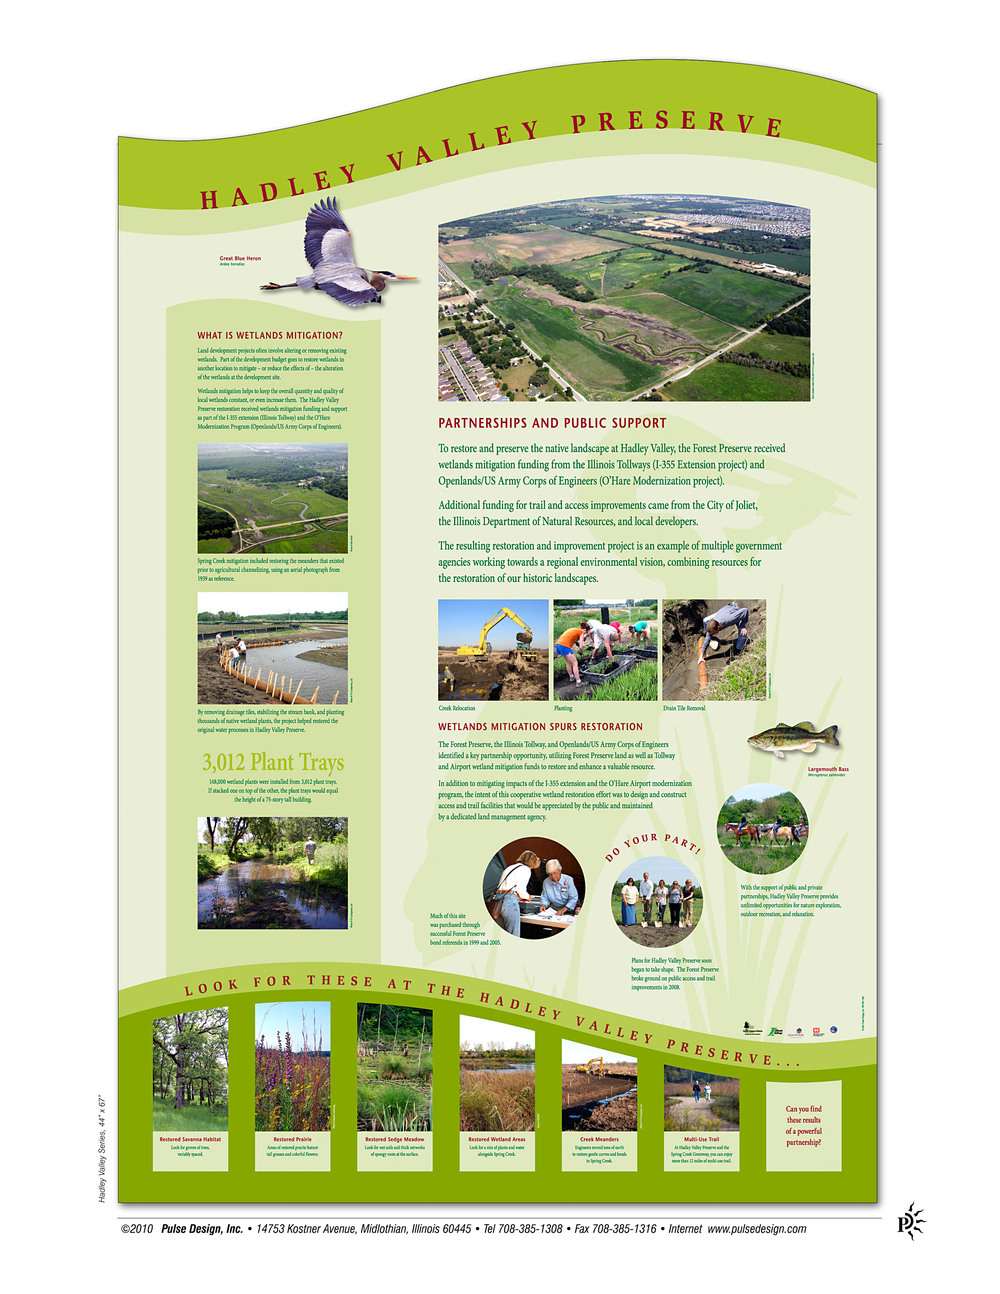 Hadley-Valley-Trail-Sign-Heron-Panel-Pulse-Design-Inc.jpg